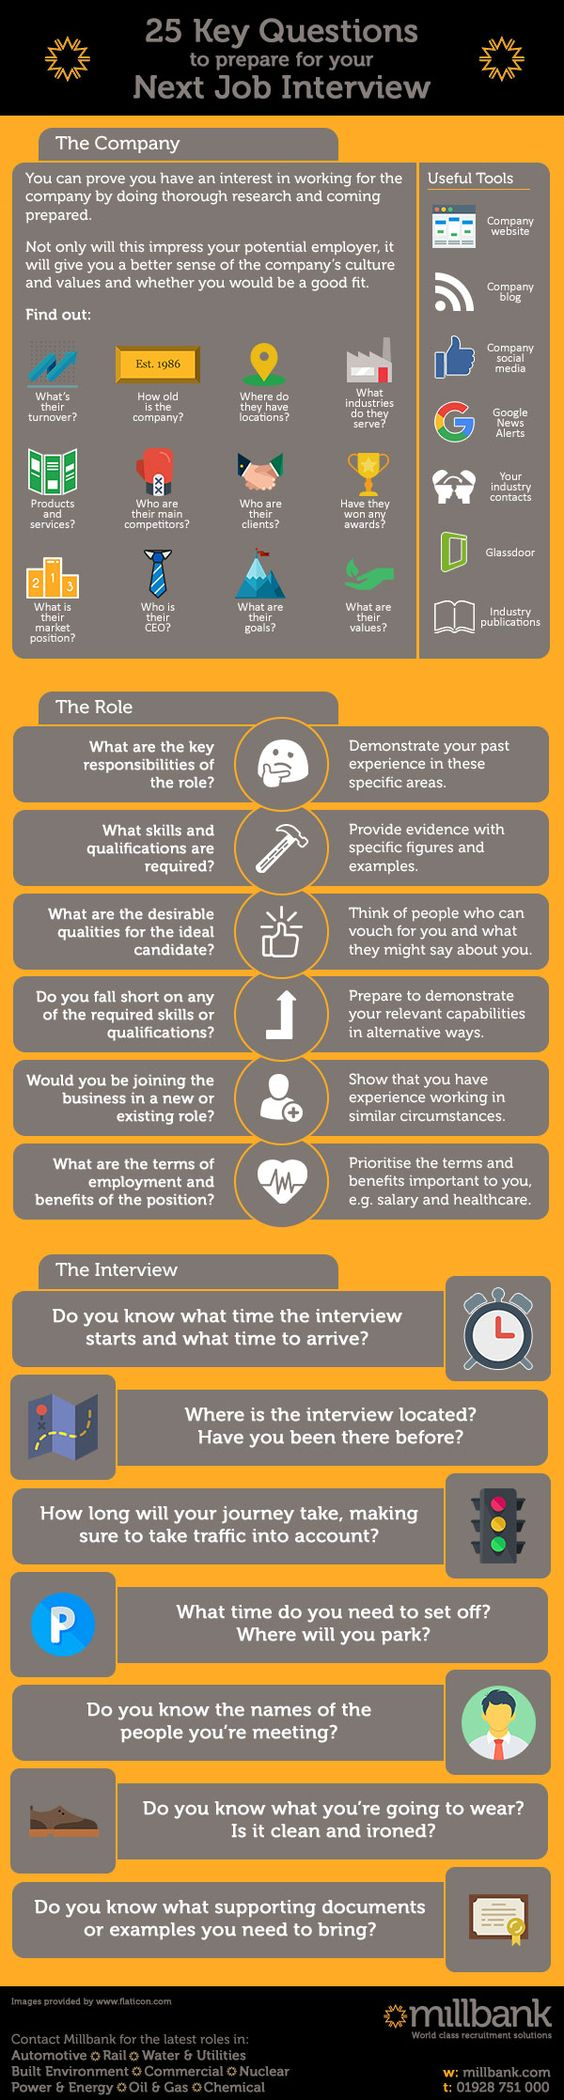 25 key questions to prepare for your next job interview